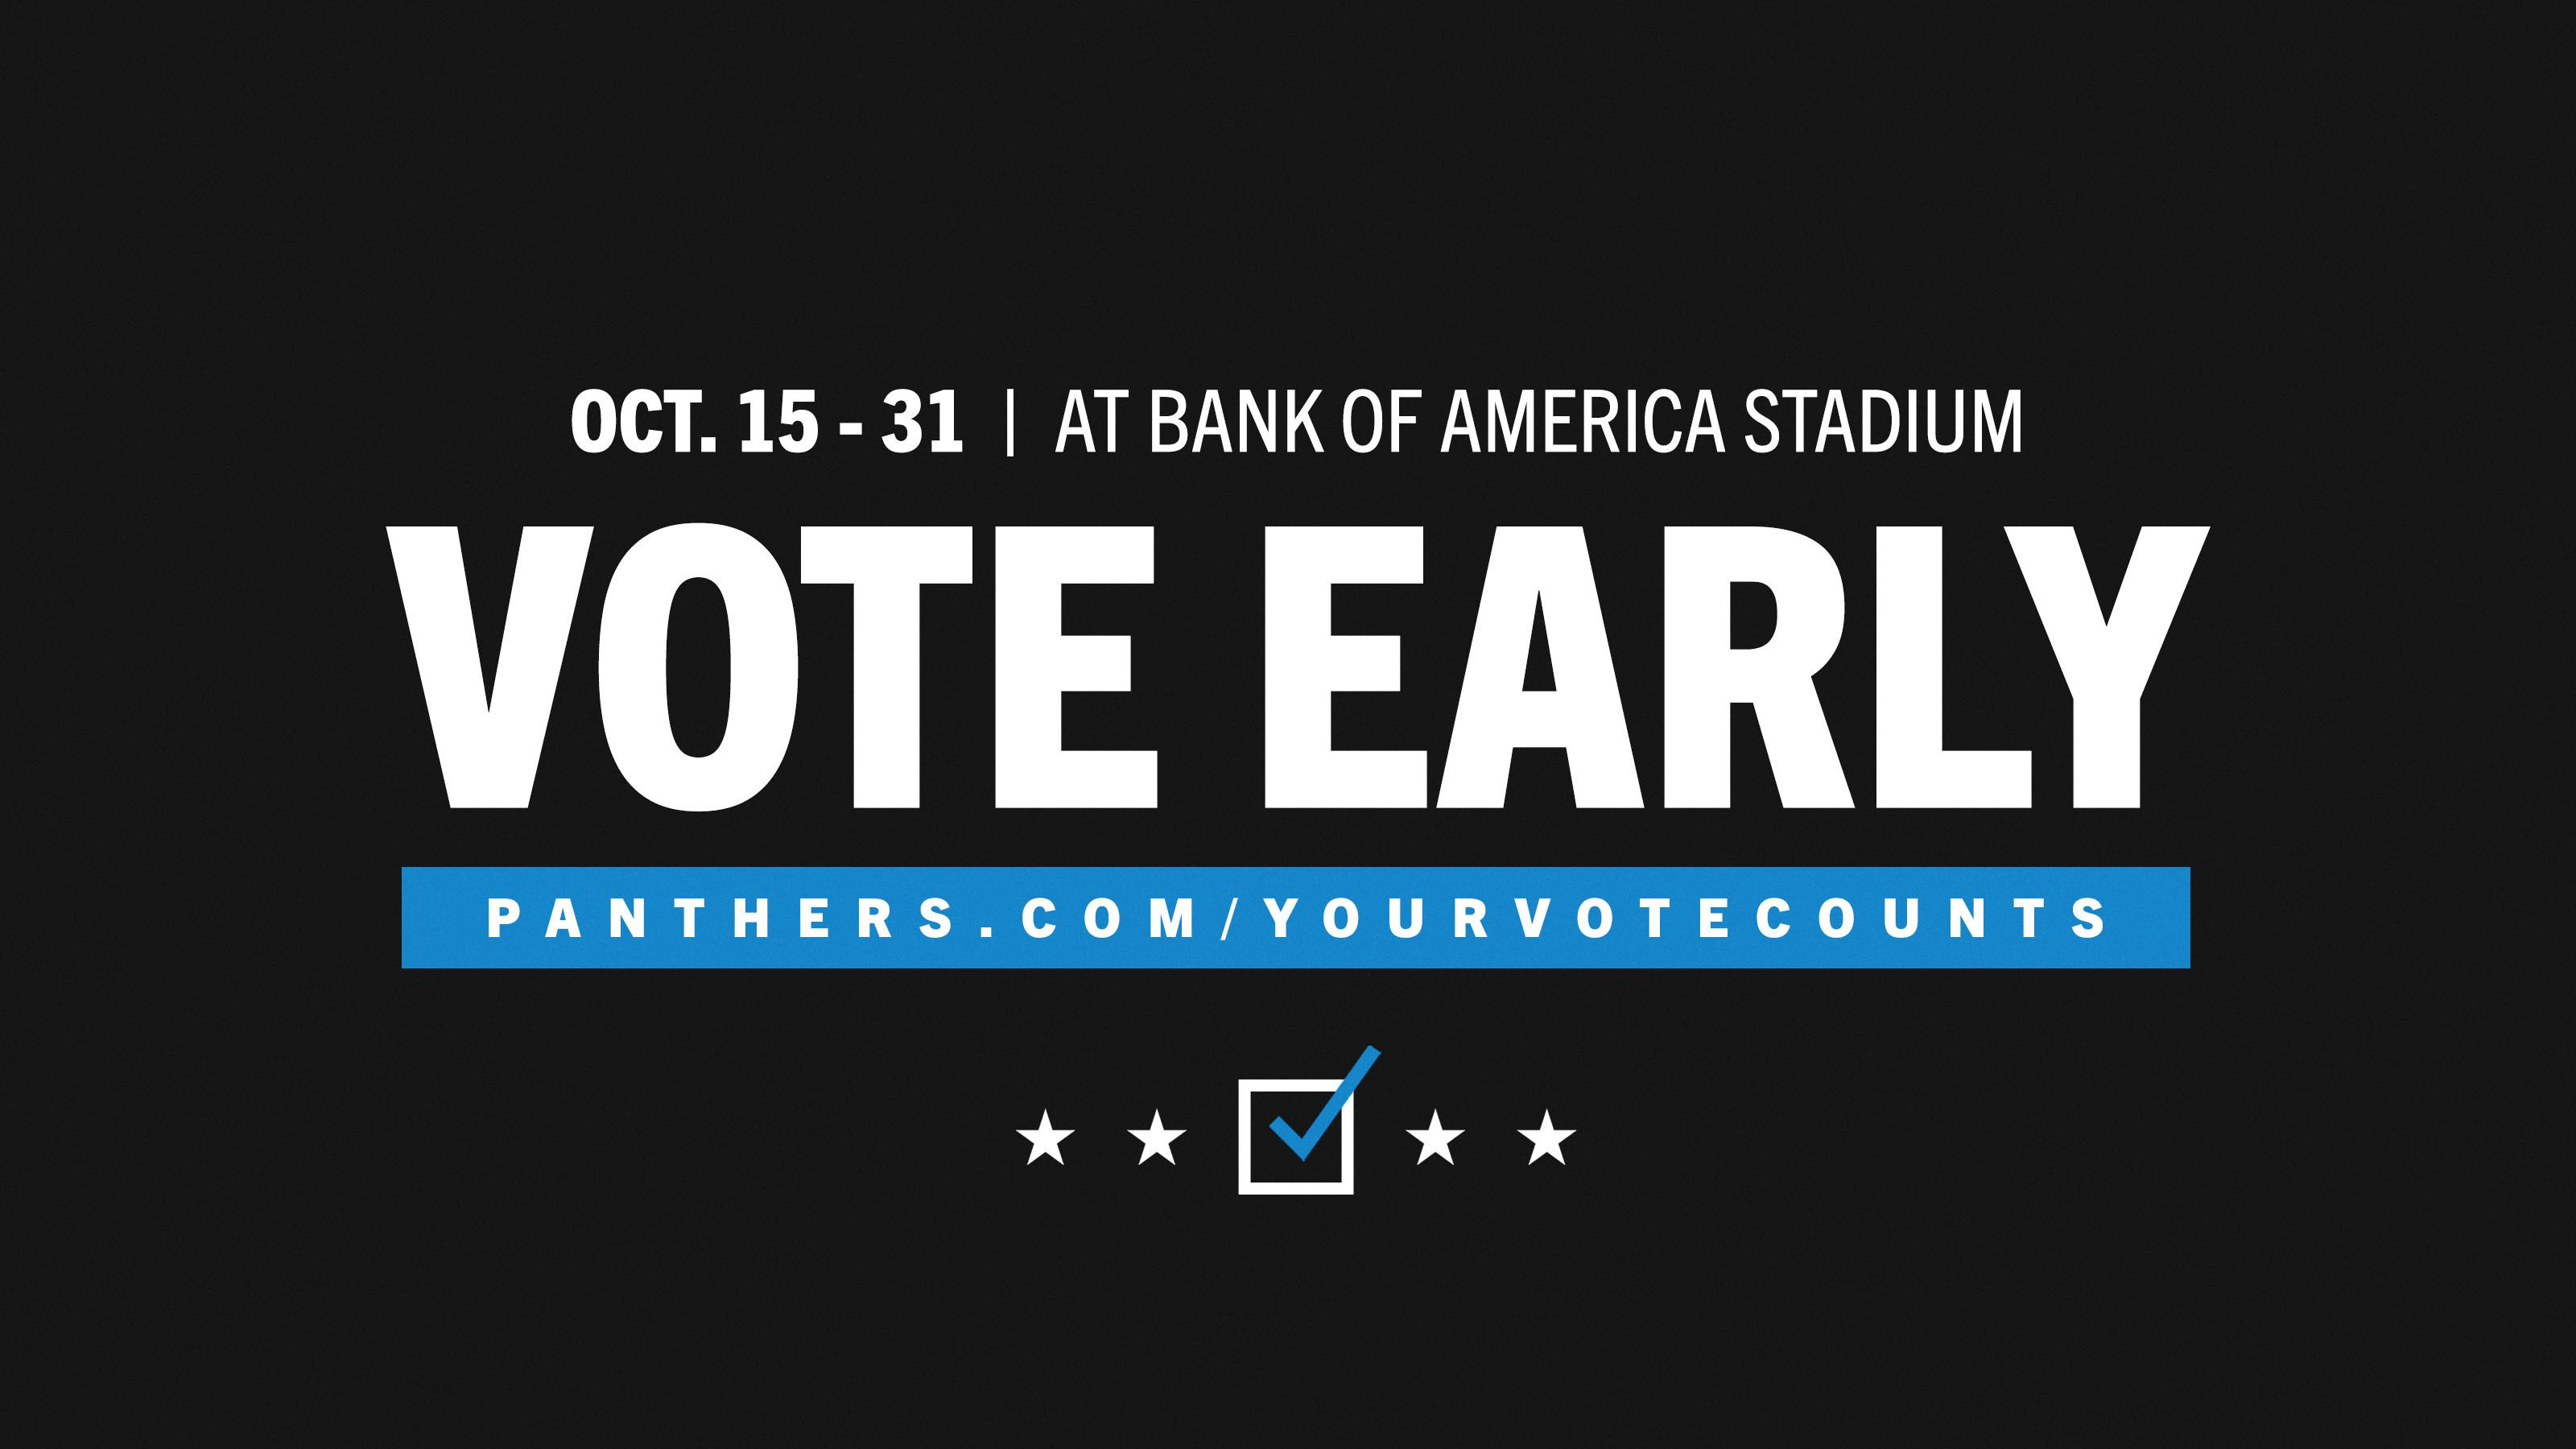 Vote Early at Bank of America Stadium